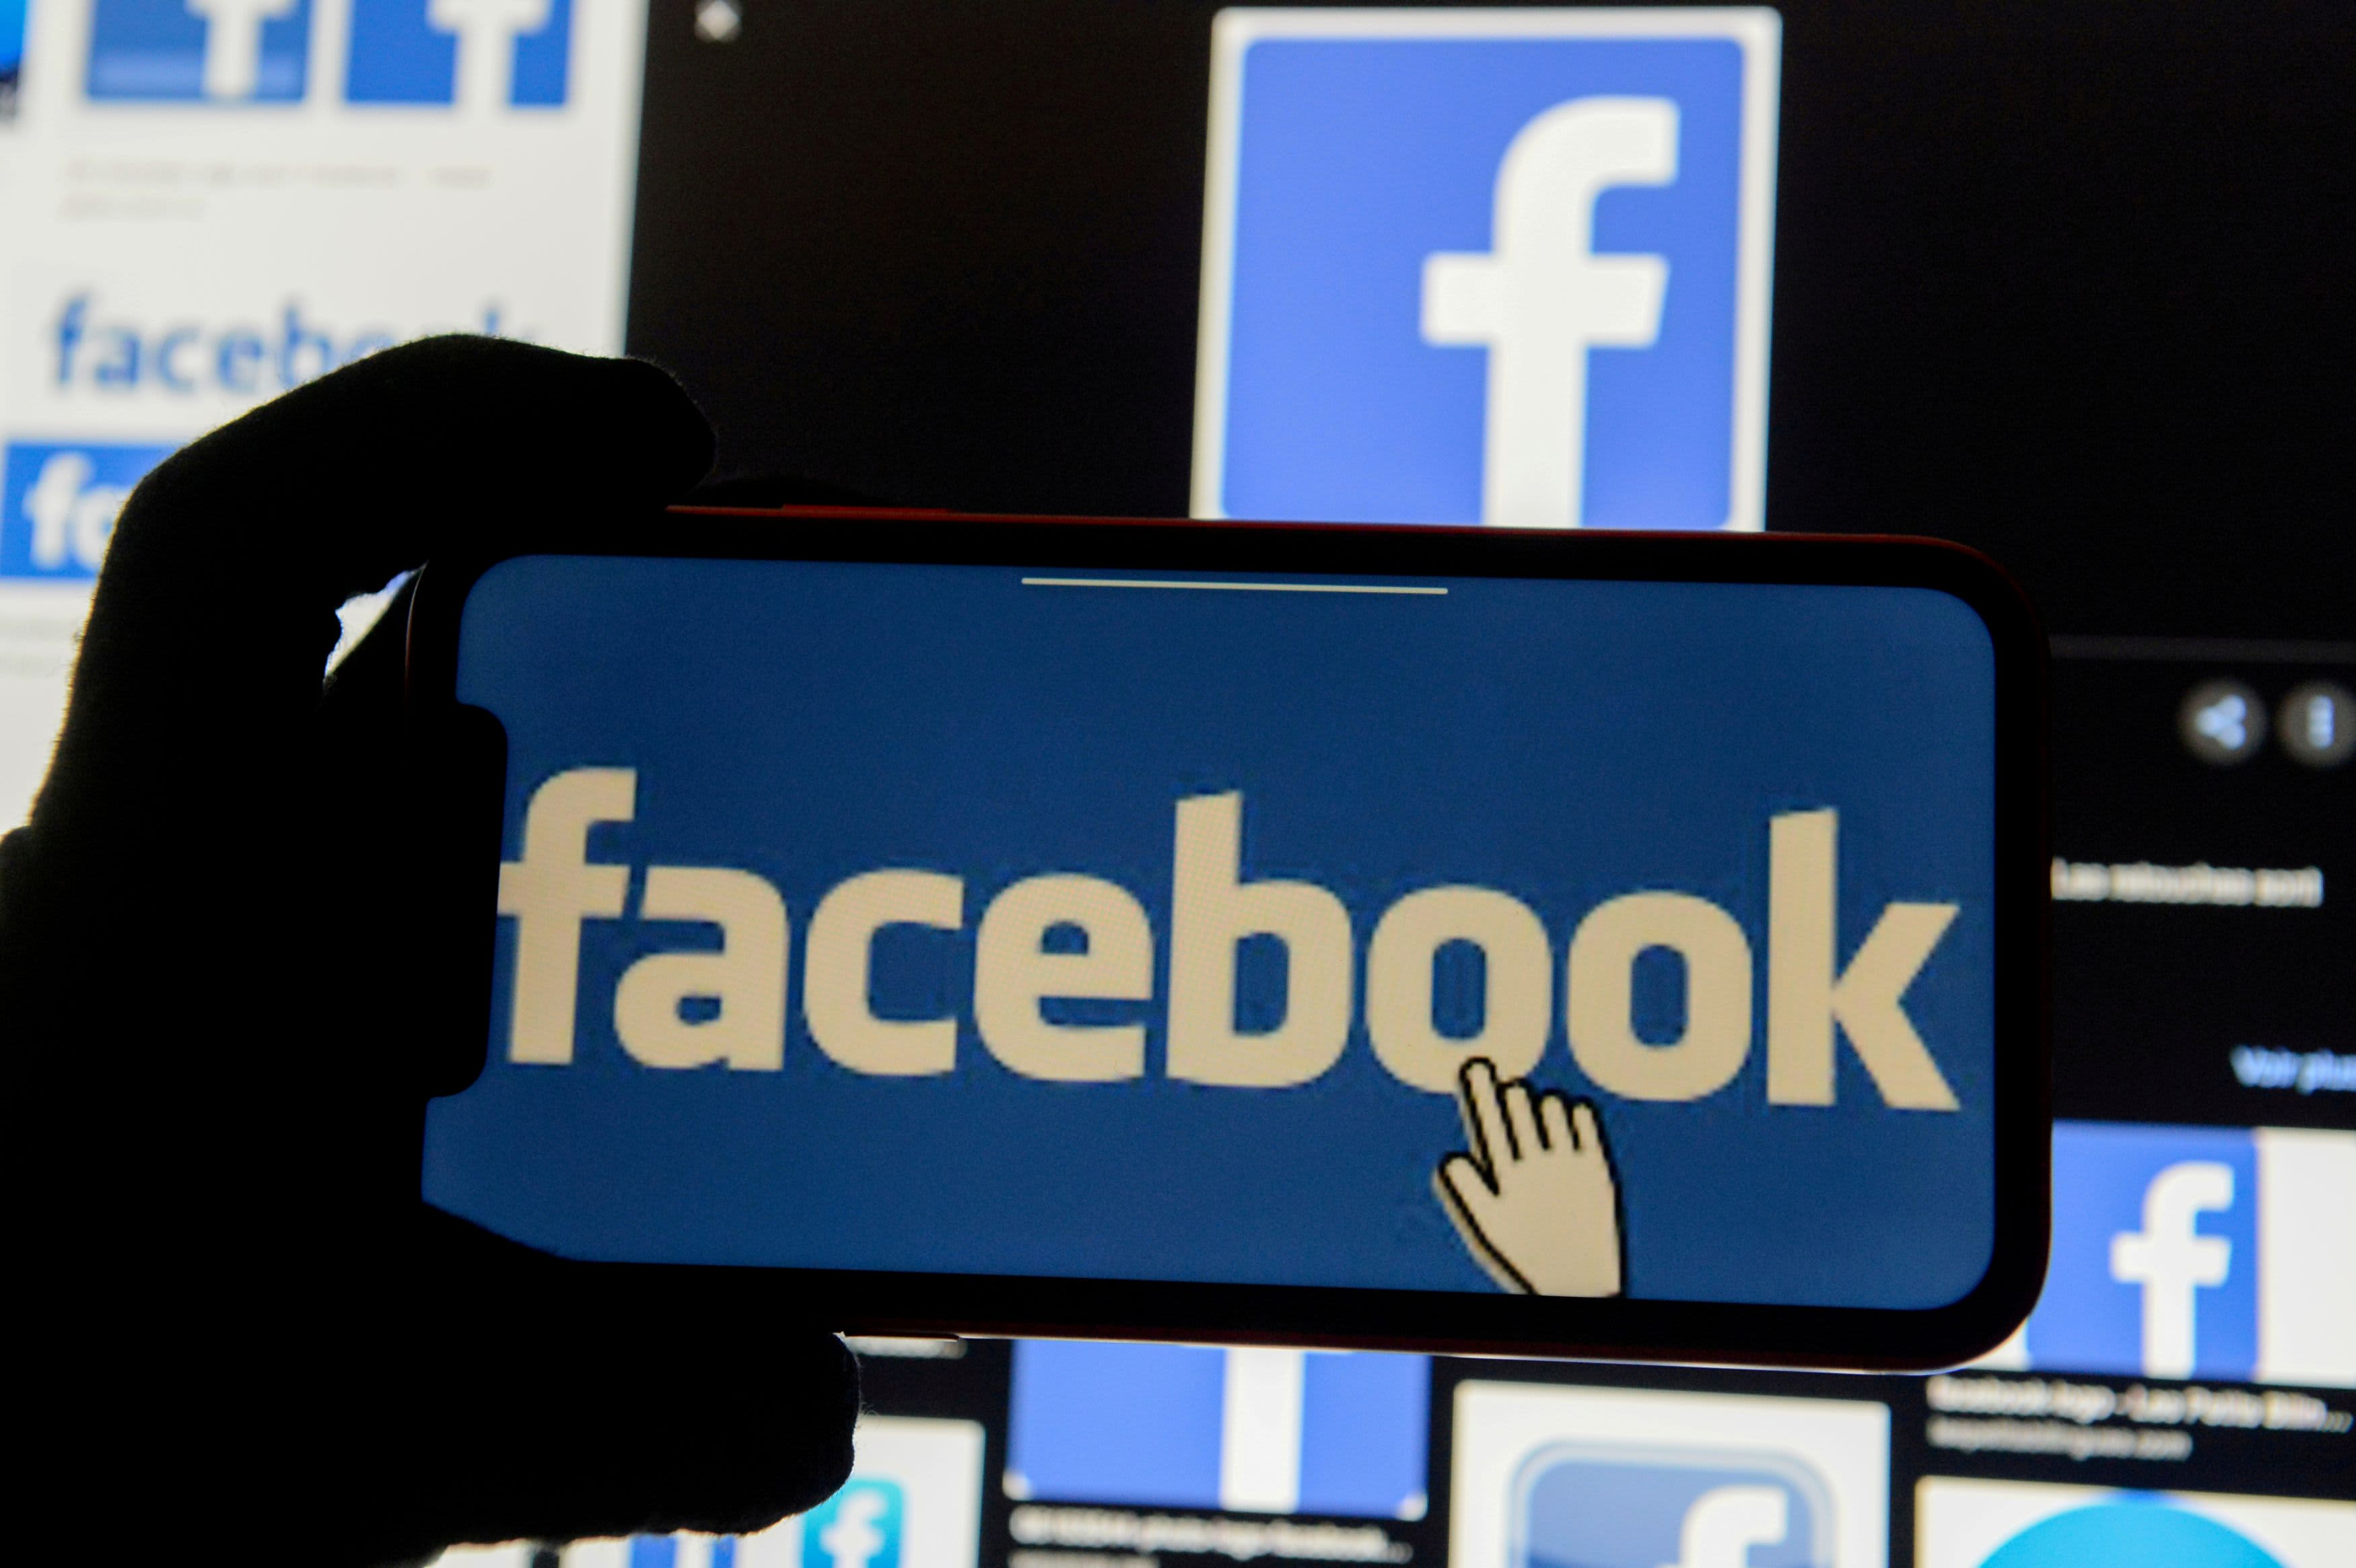 Facebook will lift temporary political ad ban in Georgia with control of Senate still in play